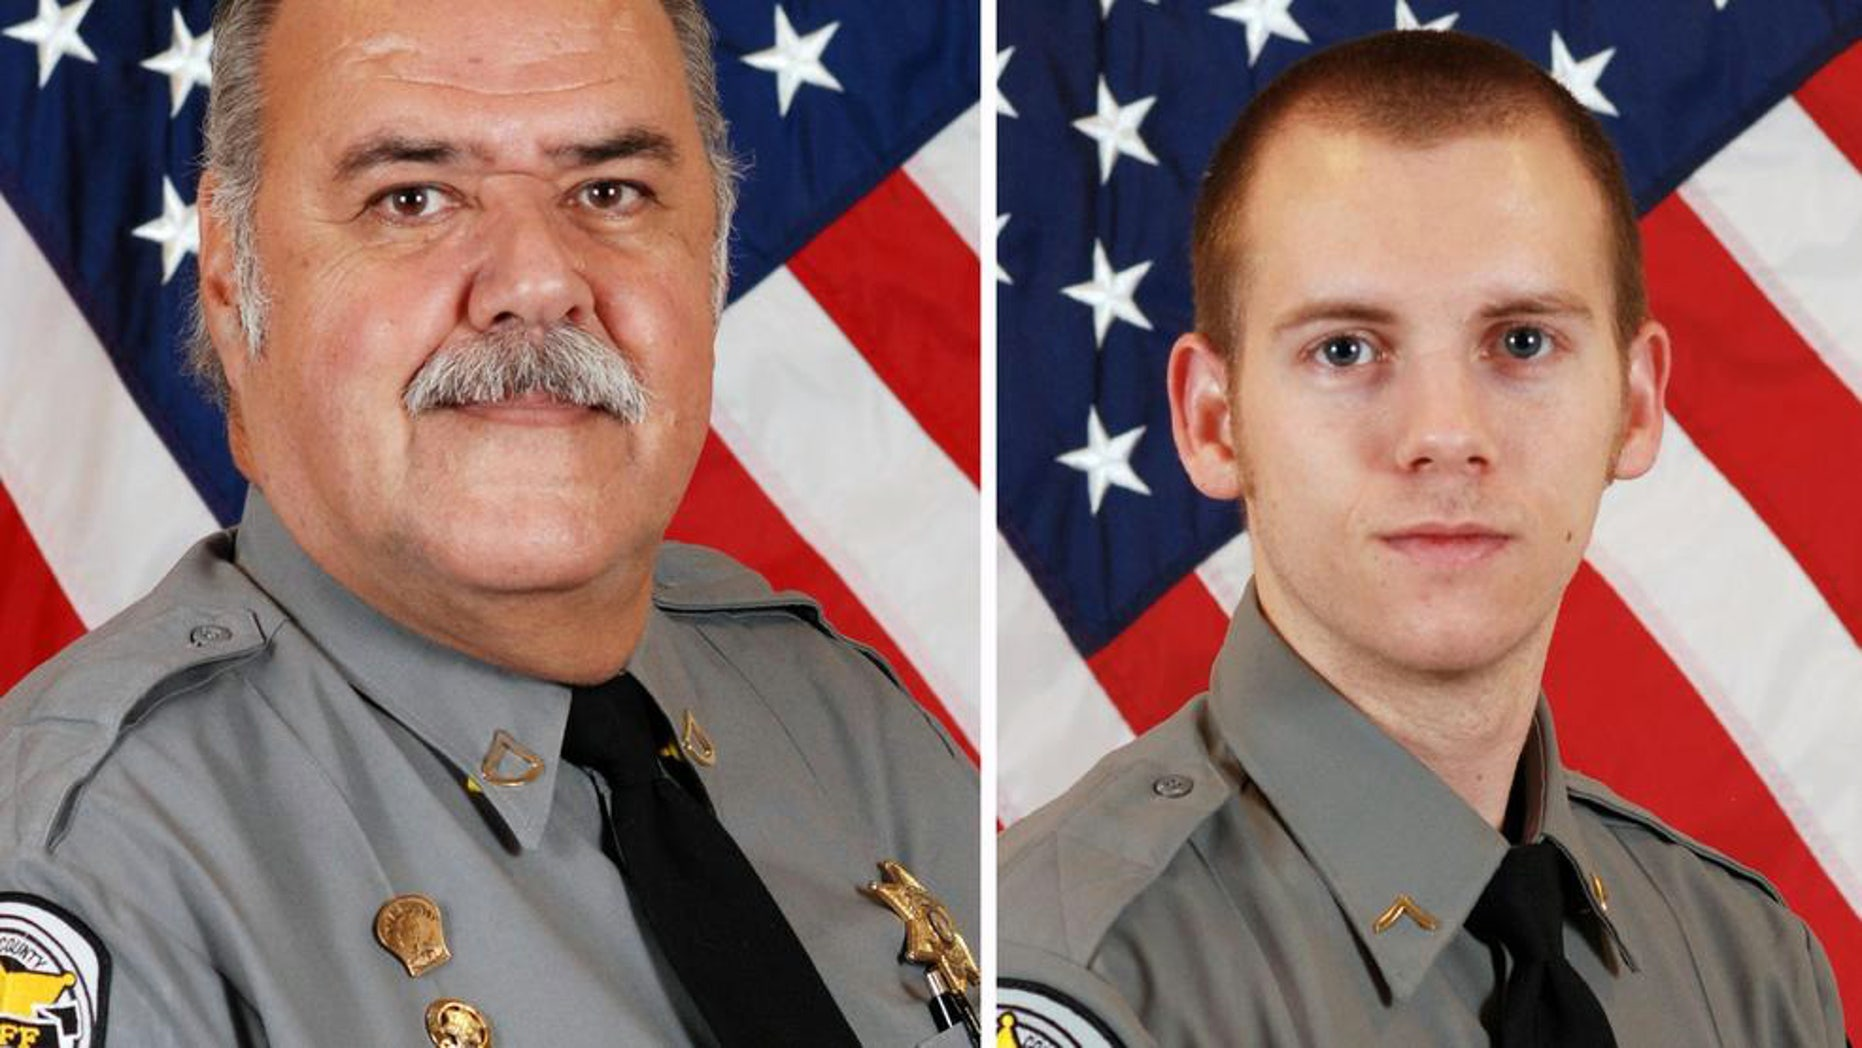 Former Horry County Sheriff's Deputies Stephen Flood and Joshua Bishop